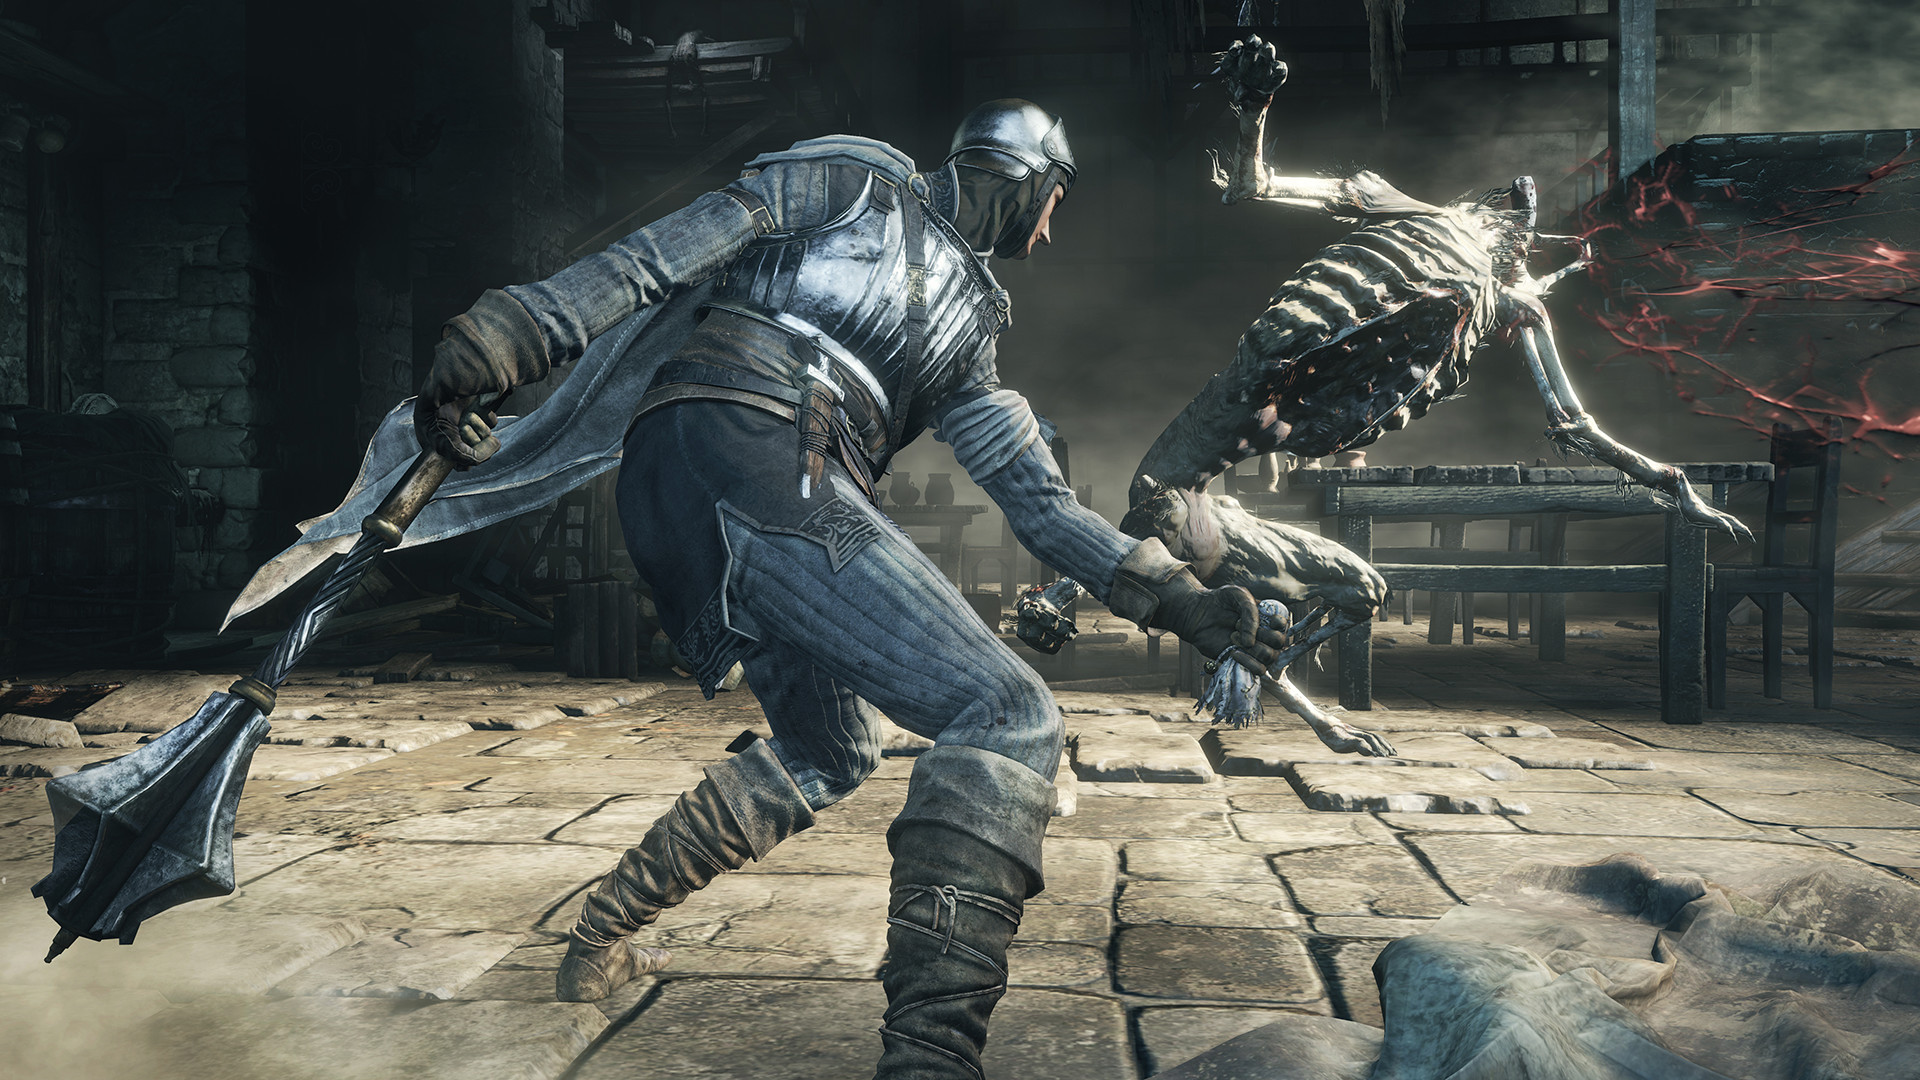 DARK SOULS III Features